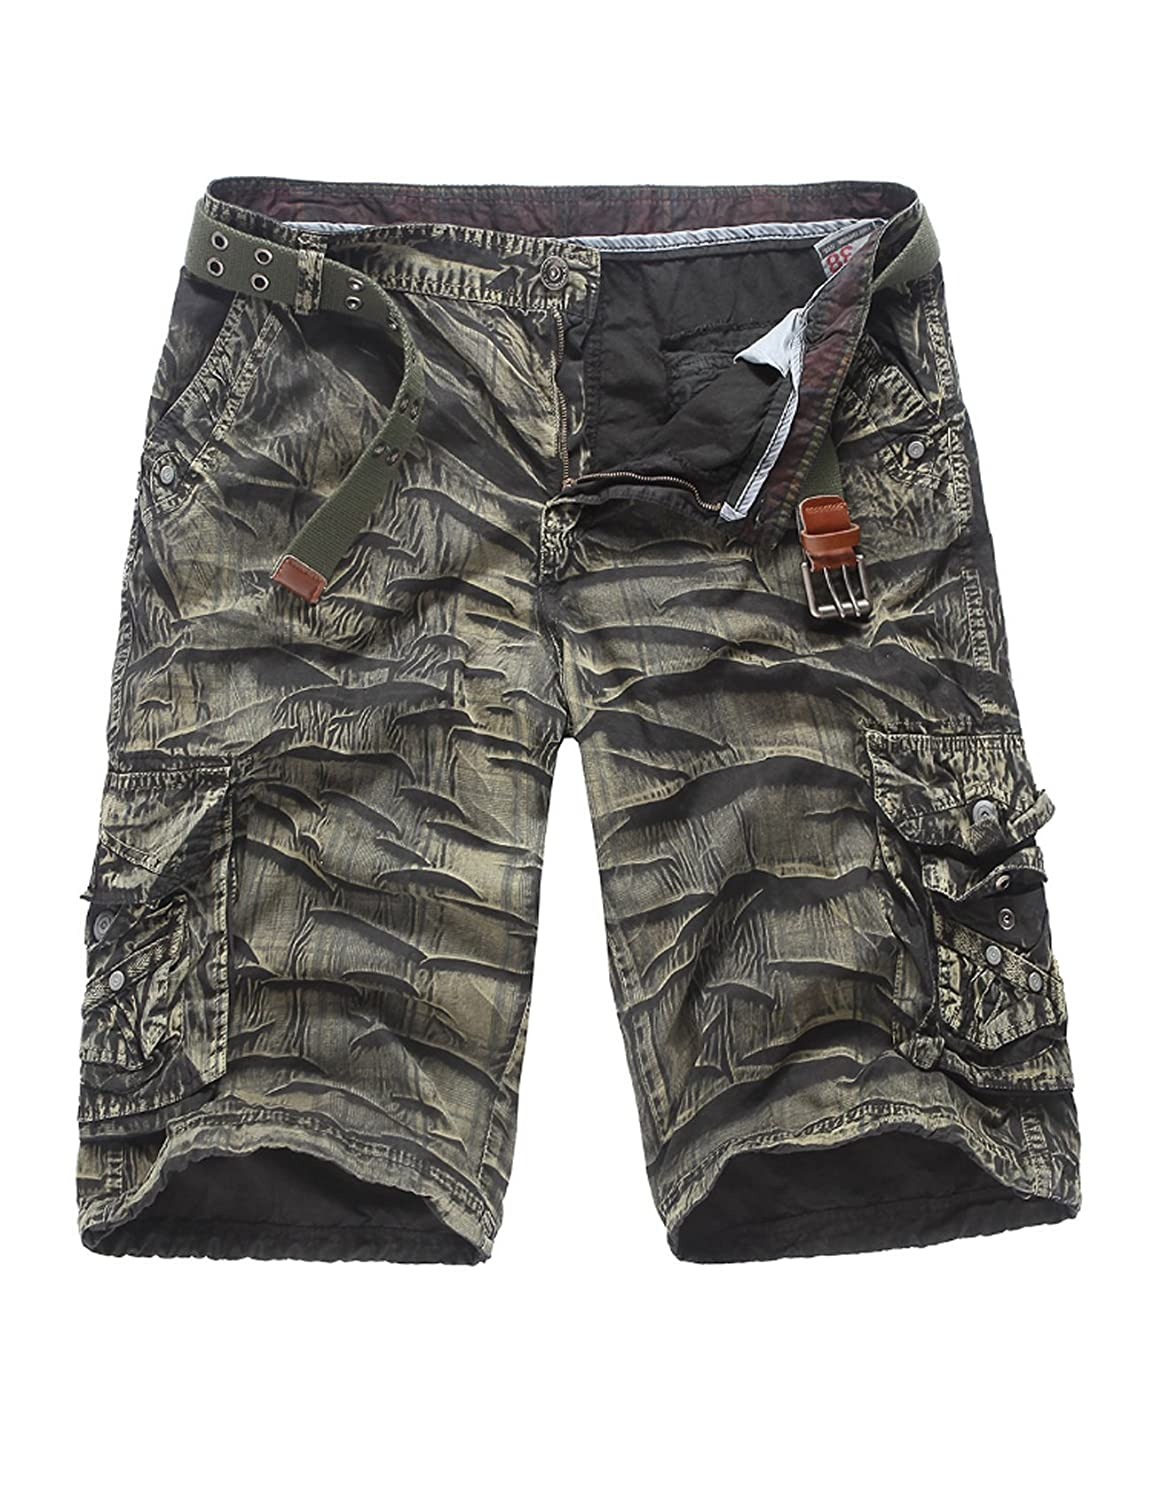 Jueshanzj Men's Cotton Shorts Camouflage Multi-Pockets ZTJSNC0368